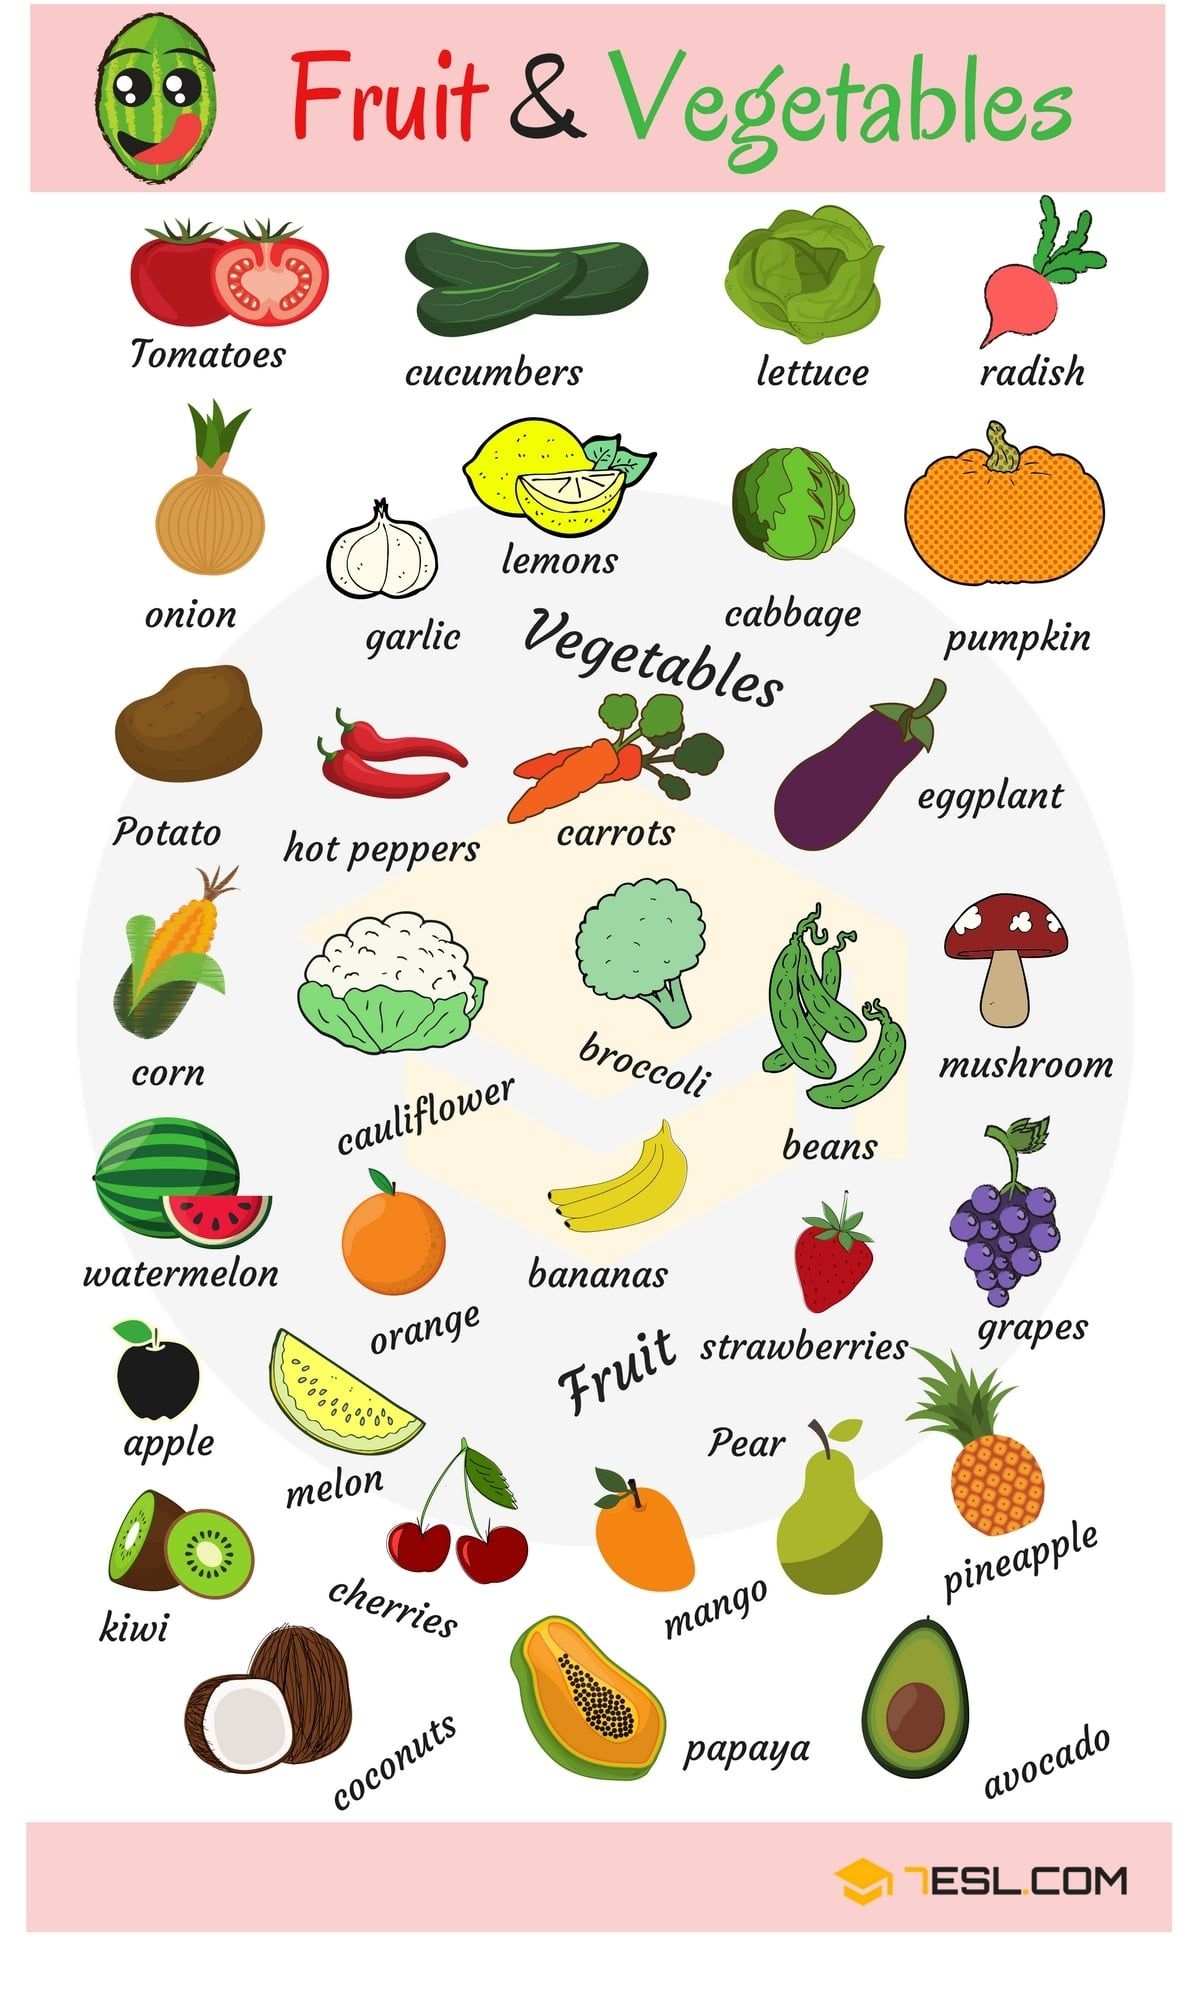 Fruits And Vegetables List English Names And Pictures 7esl Cosas De Ingles Verduras En Ingles Como Aprender Ingles Basico